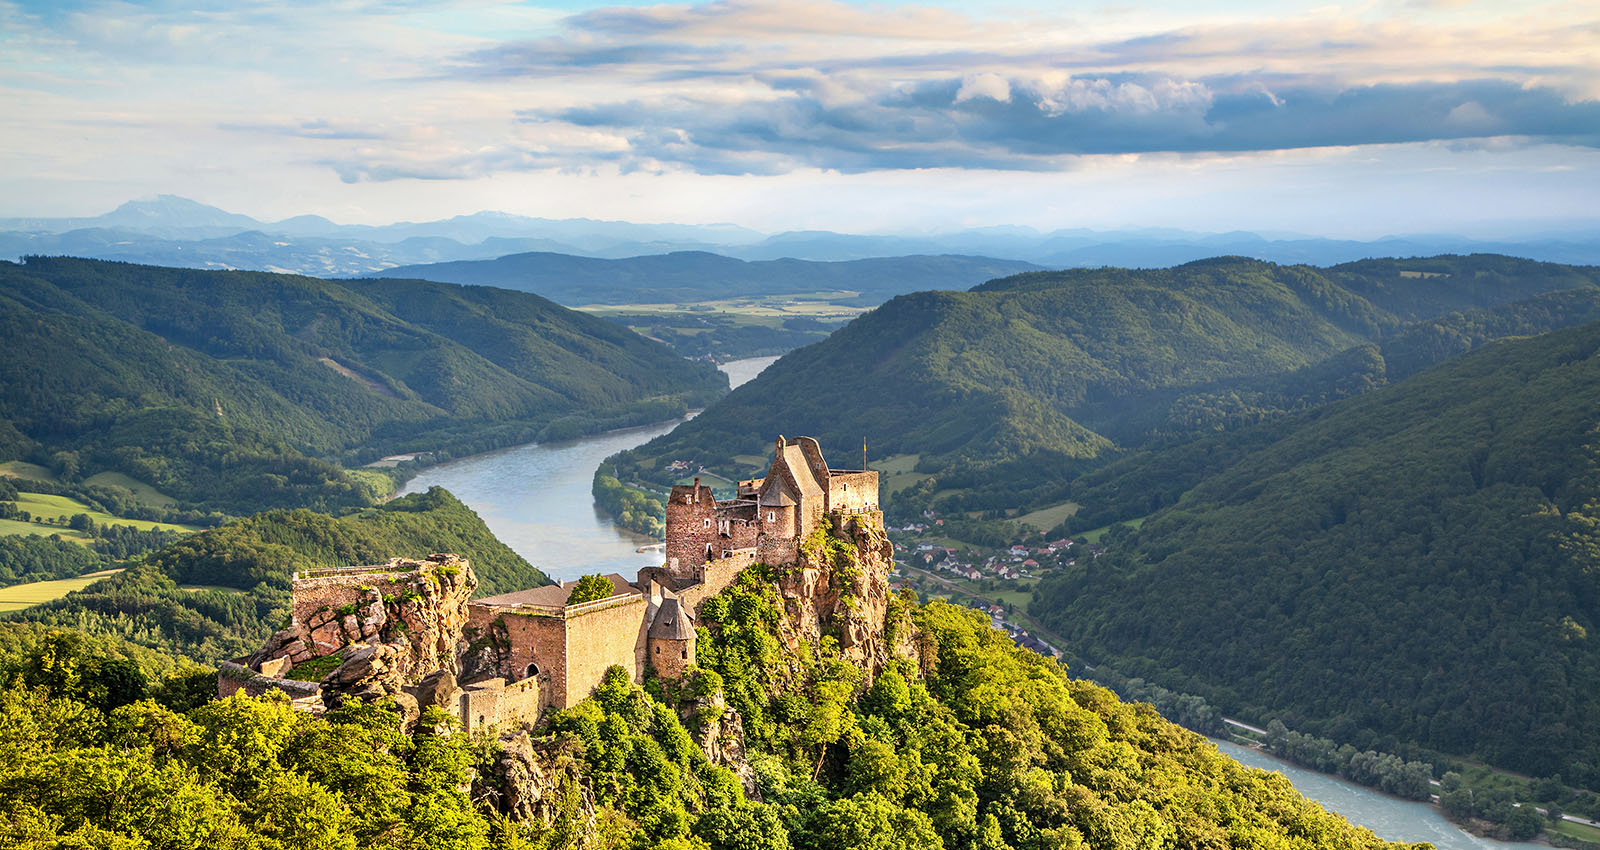 Aggstein castle at the Danube